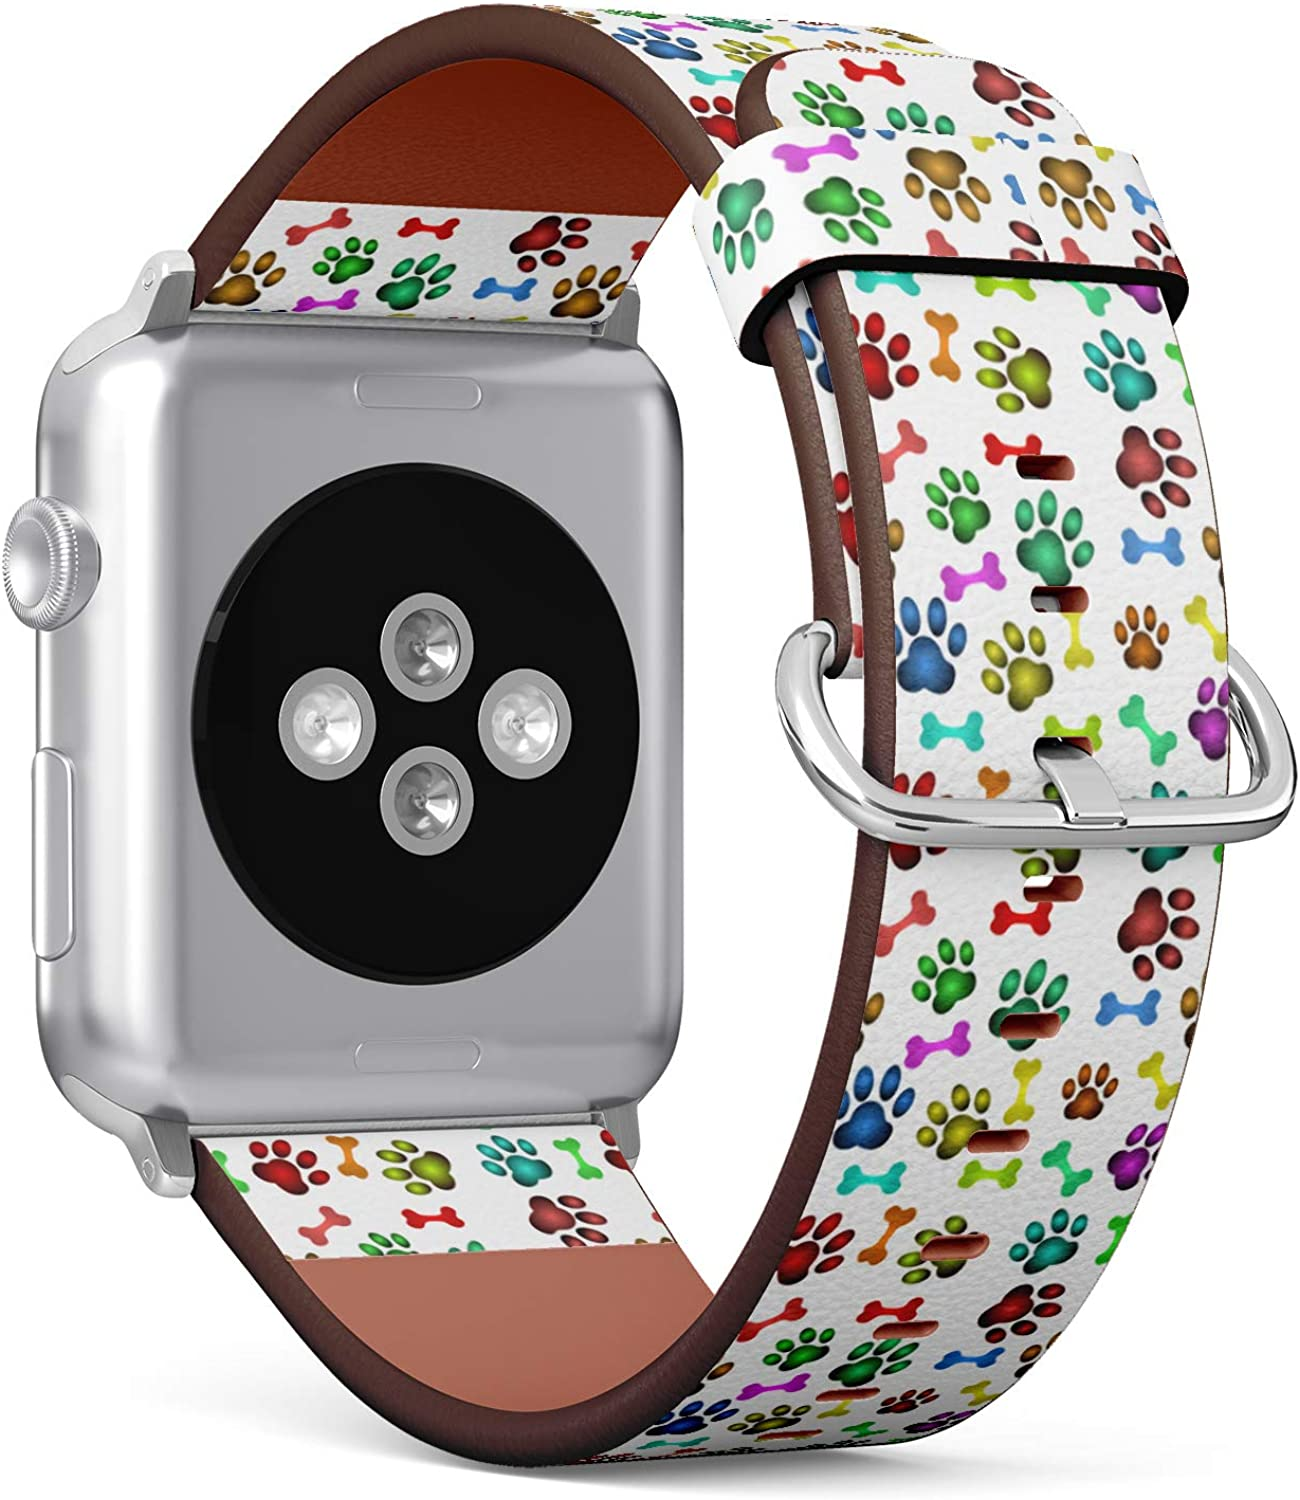 (Colorful Pattern with Dog paw and Bone) Patterned Leather Wristband Strap for Apple Watch Series 4/3/2/1 gen,Replacement for iWatch 38mm / 40mm Bands